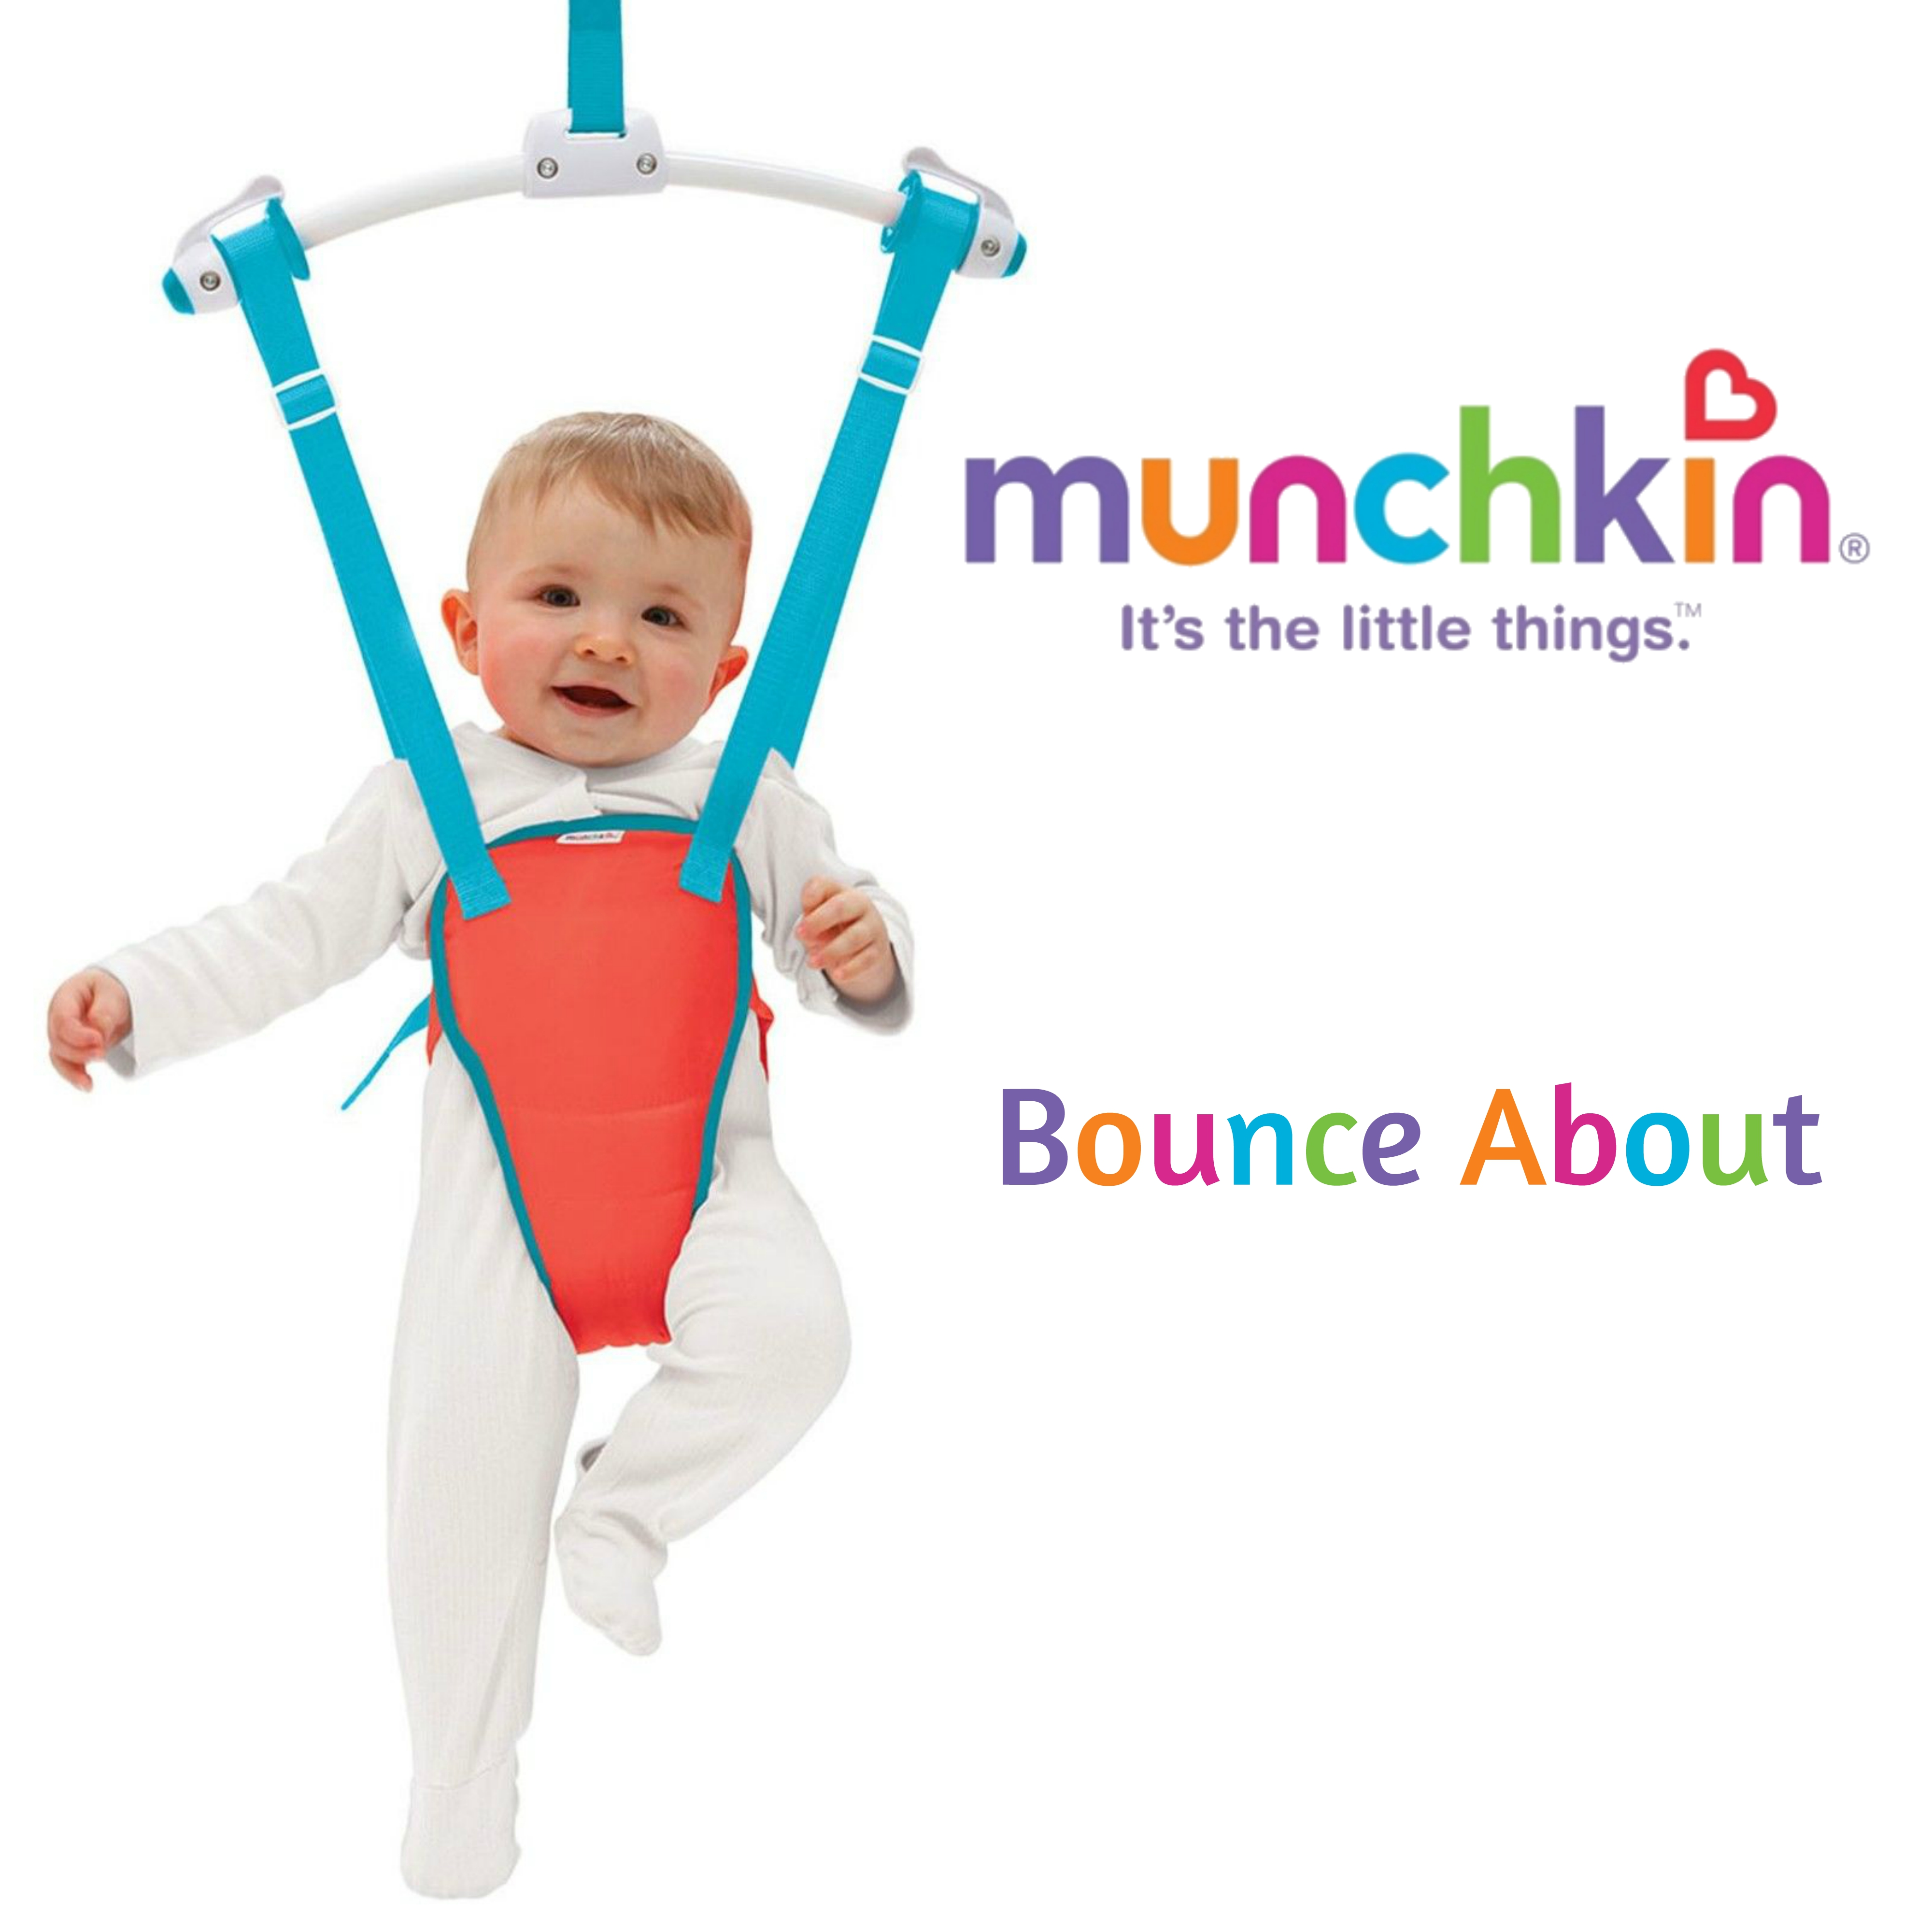 facca74aeb8 Munchkin Bounce About|Baby Door Bouncer Play Seat Jumping Fun|Adjustable  Padded